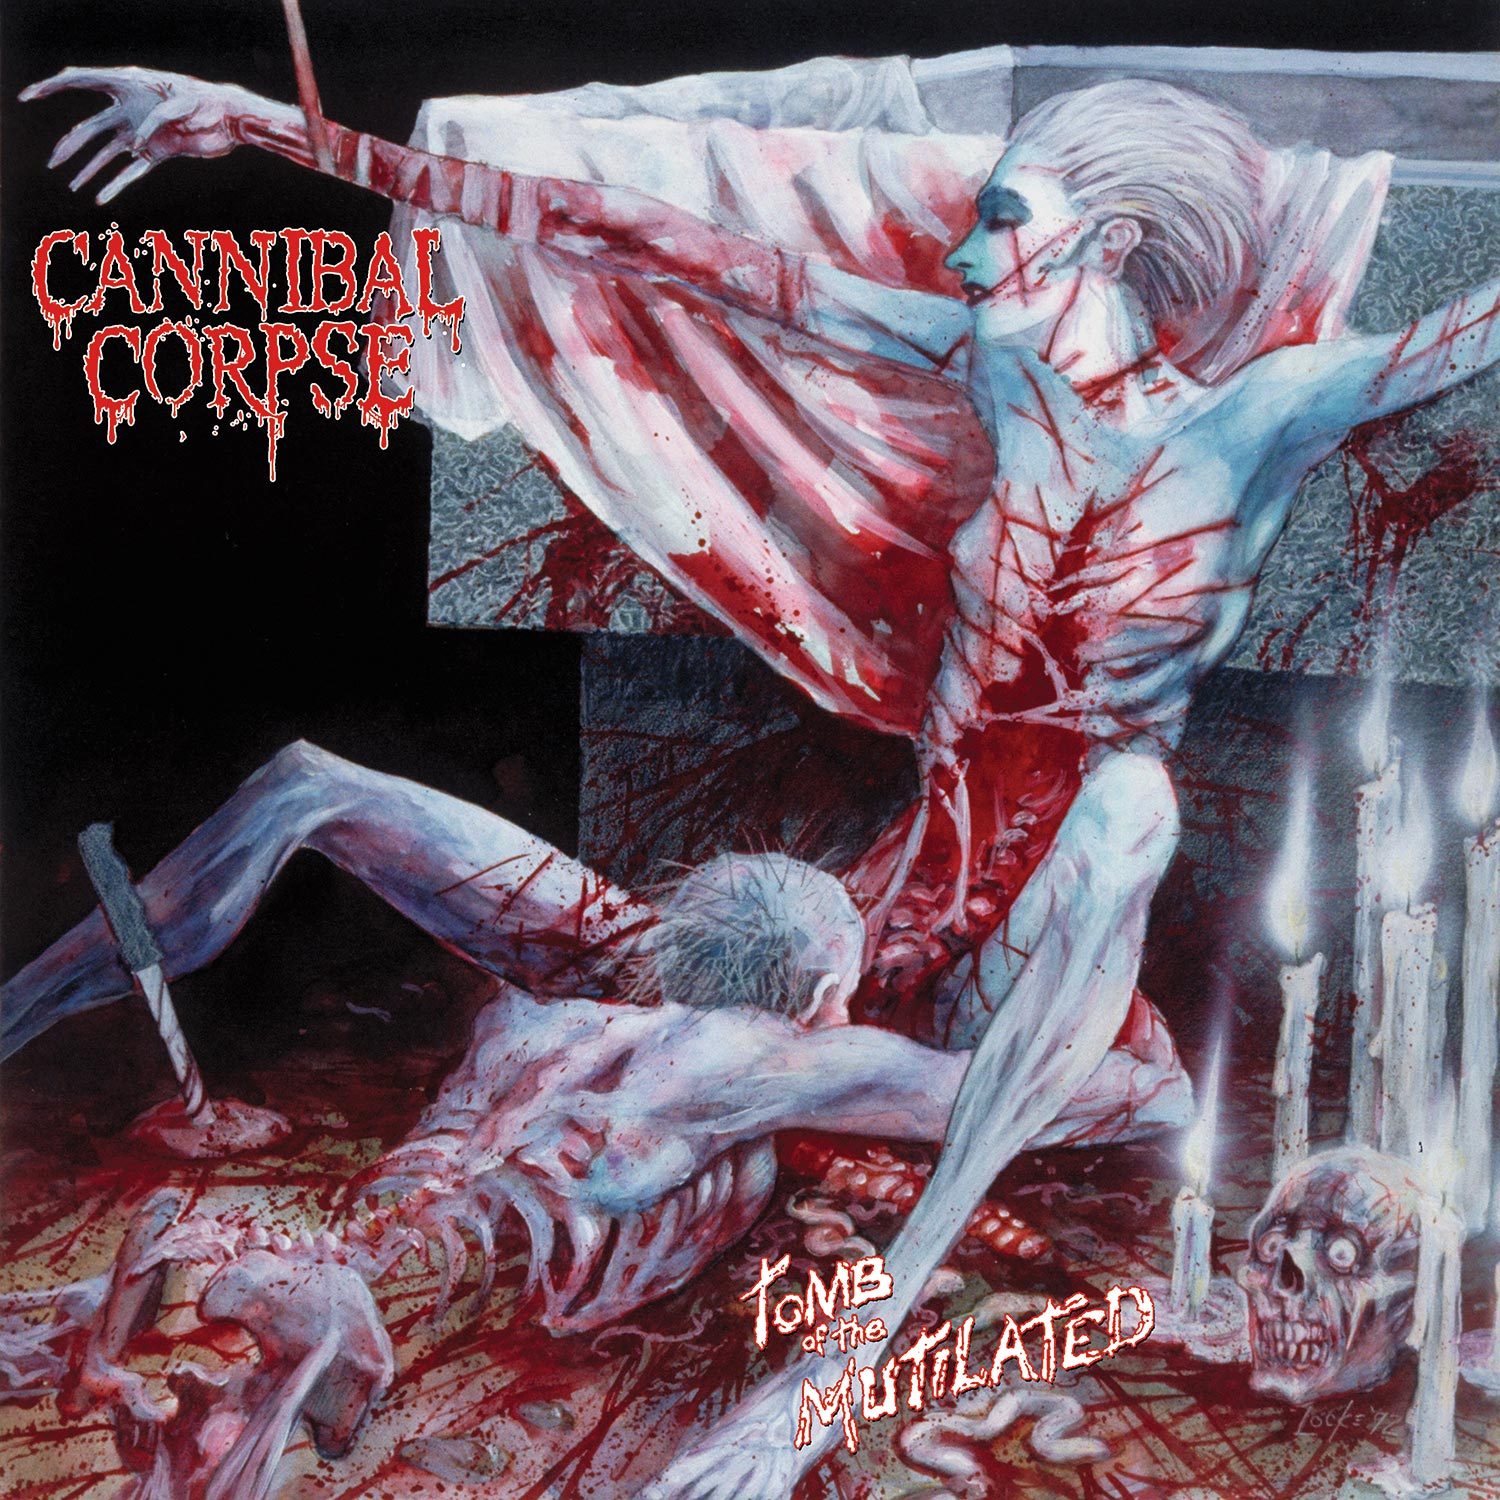 Tomb of the Mutilated (Red Slushie Vinyl)